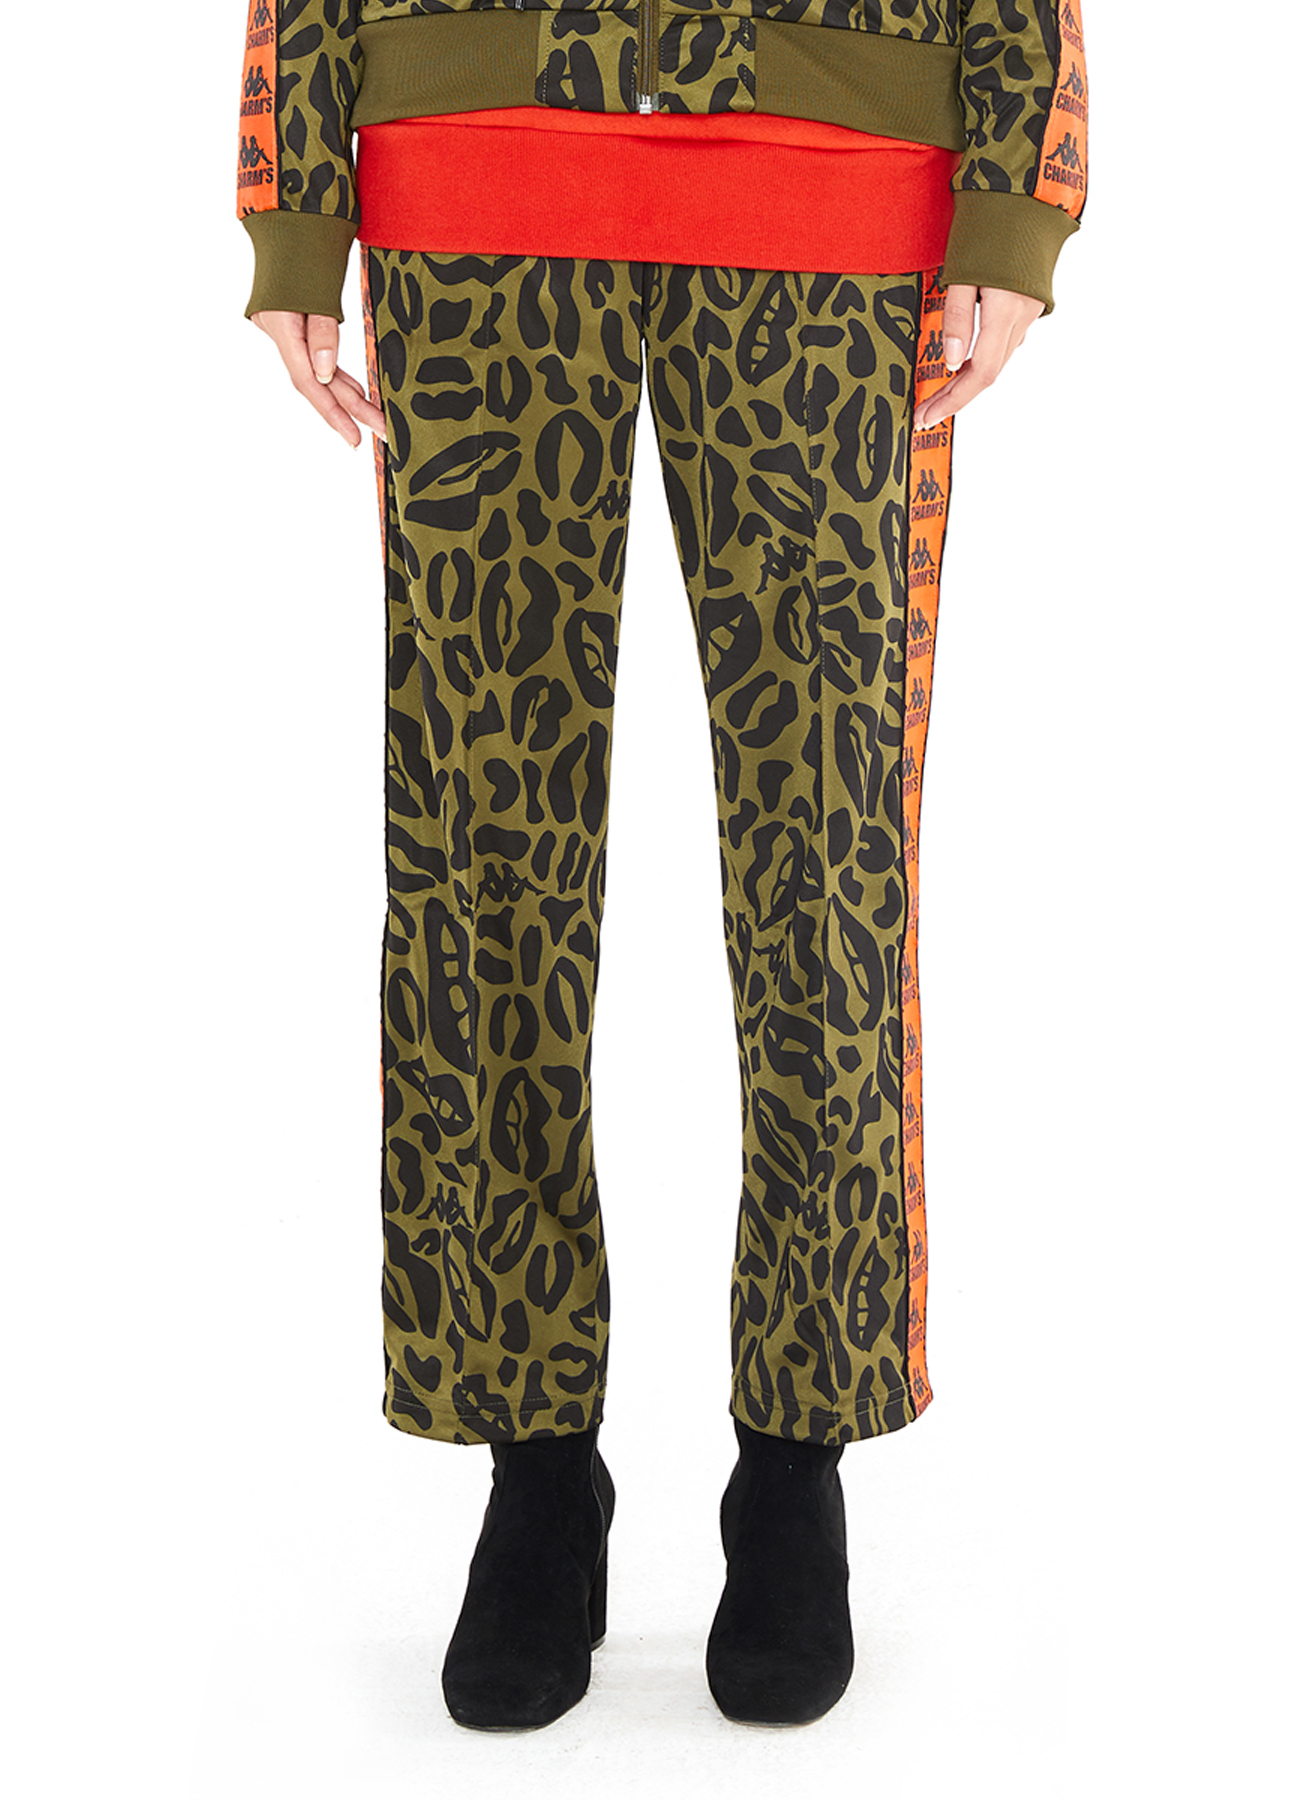 X Kappa Lip&Leopard Patten Training Pants_KA